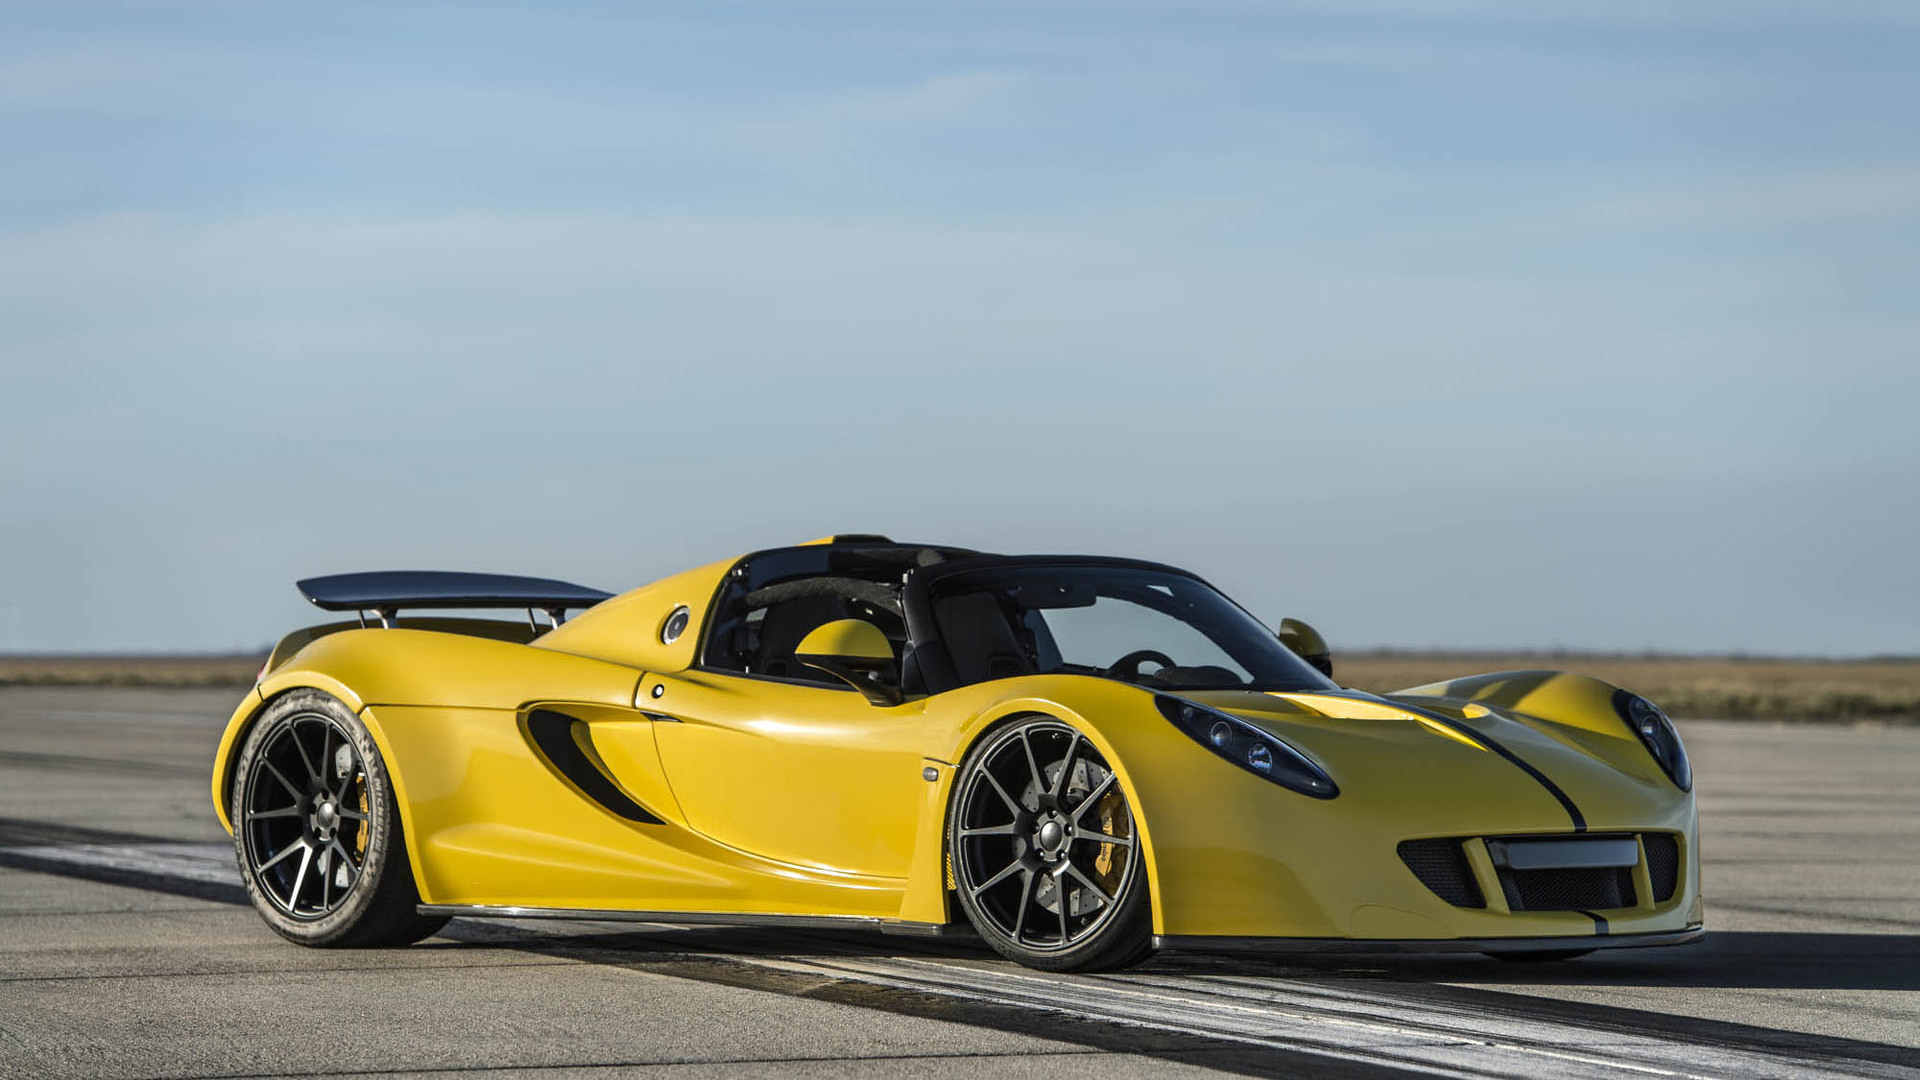 Hennessey Venom Gt Spyder Becomes The Worlds Fastest Convertible Fuse Box Diagram 2008 Mercedes